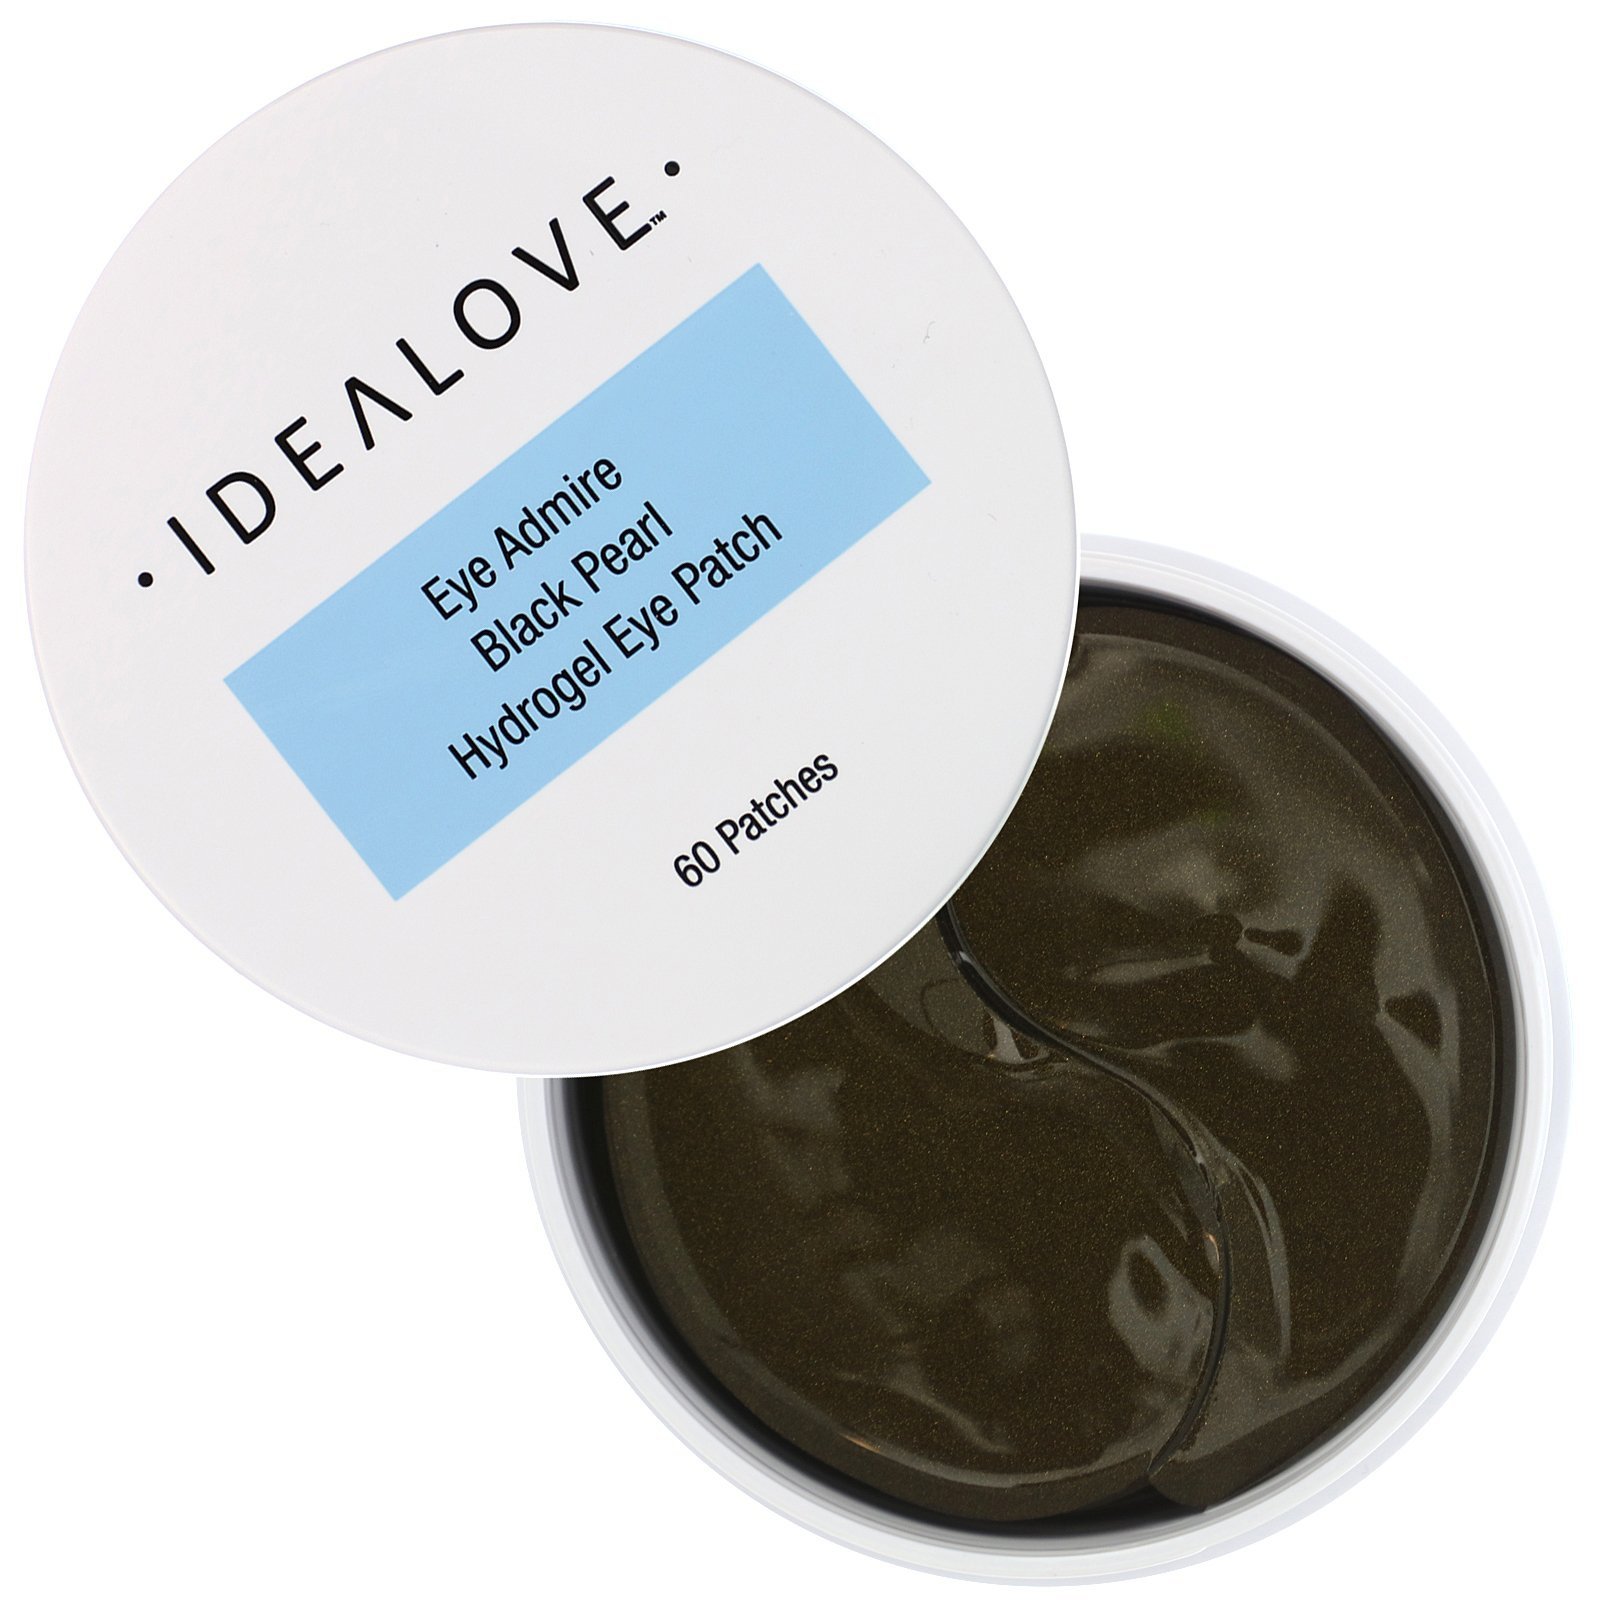 Idealove Eye Admire Black Pearl Hydrogel Eye Patch, 60 Patches